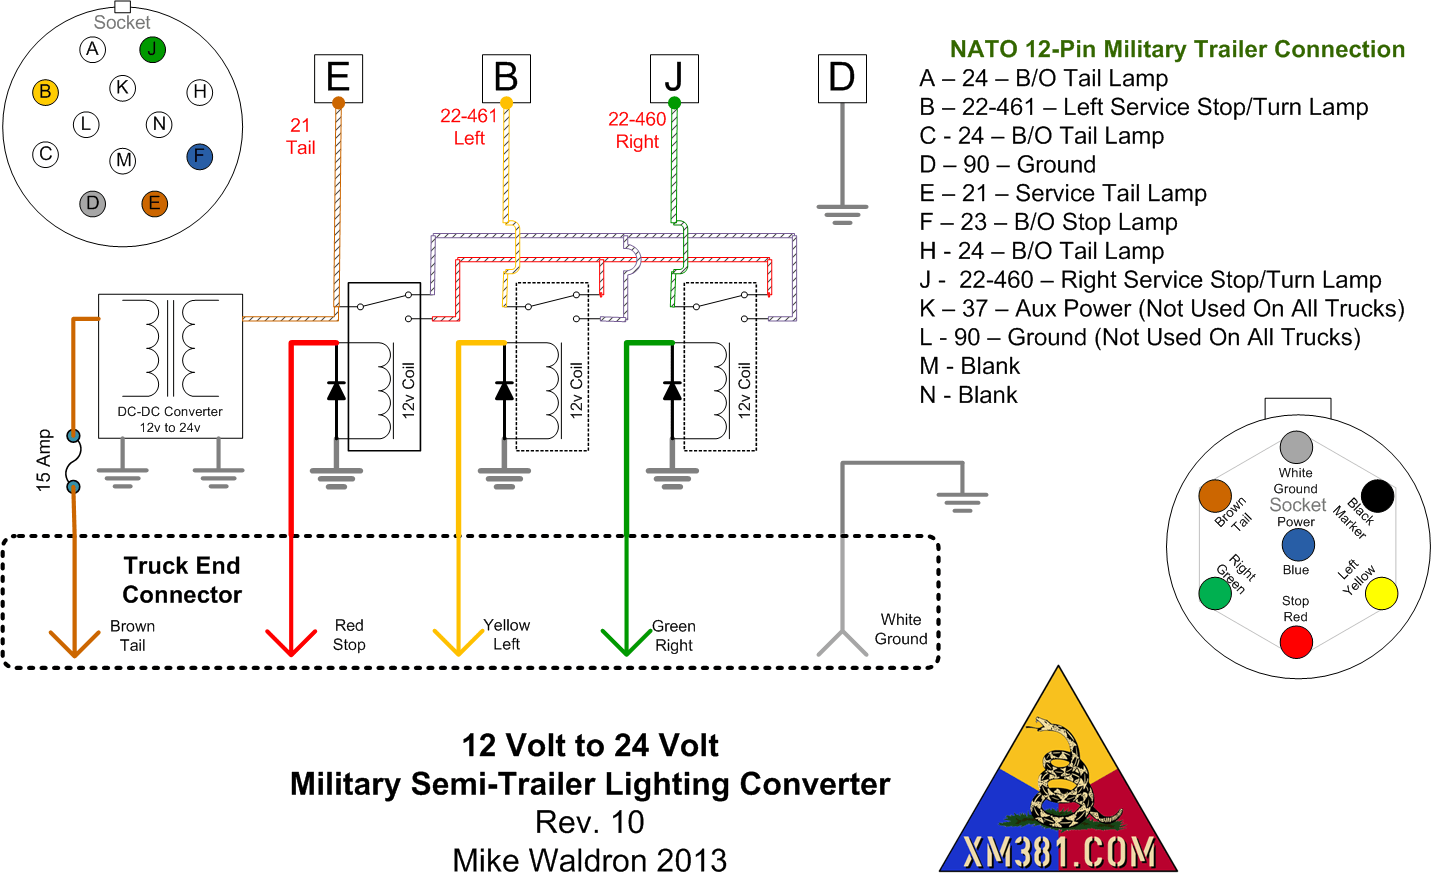 7 way round trailer plug wiring diagram symantec endpoint protection architecture xm381 12 volt civllian truck to 24 military lighting into the s nato socket